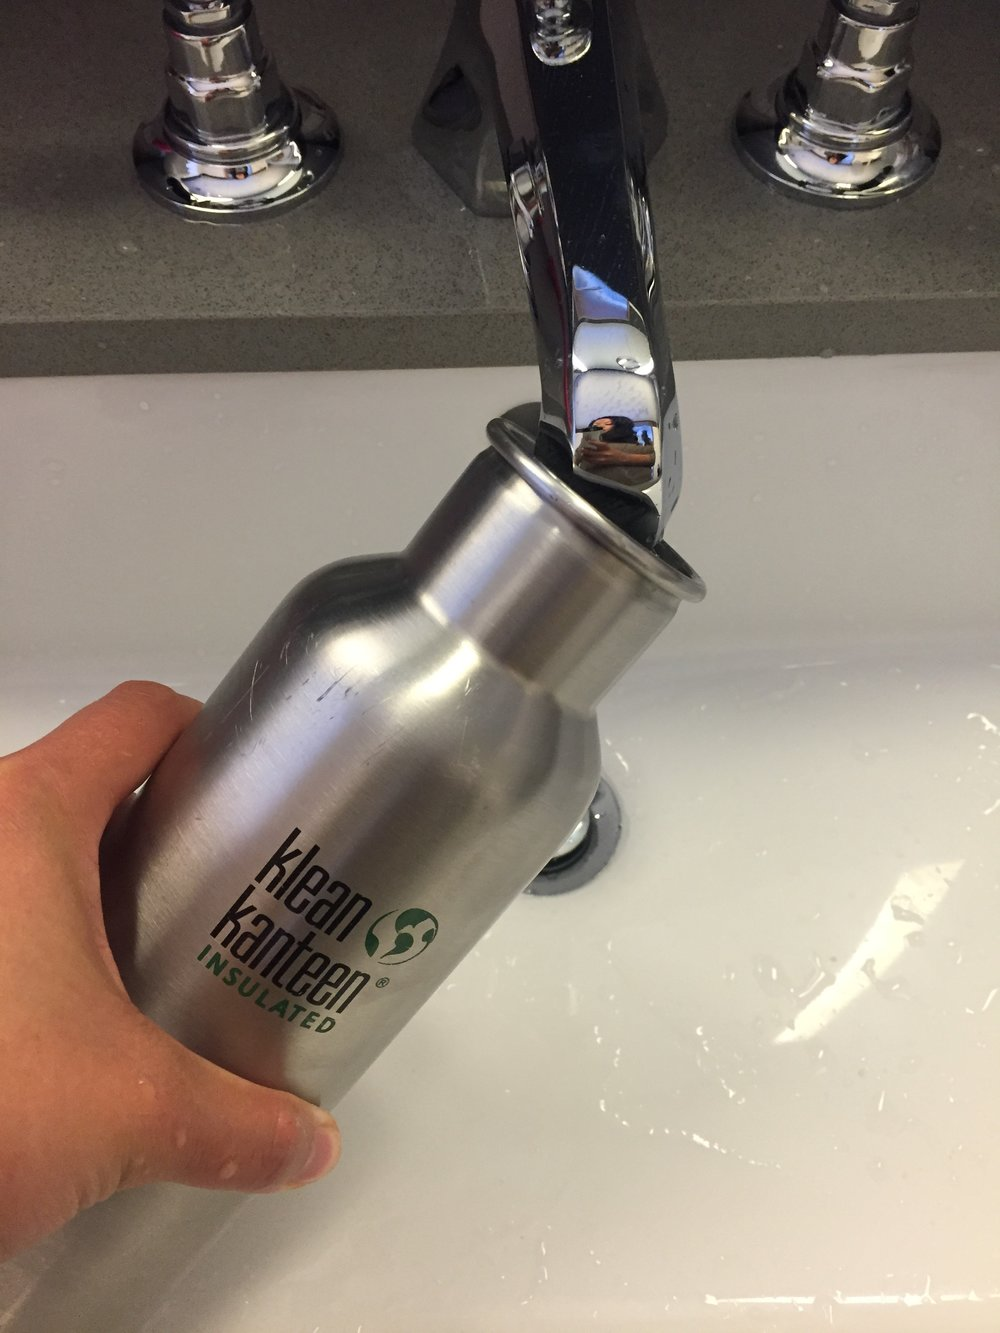 NYC water is safe to drink from the tap.